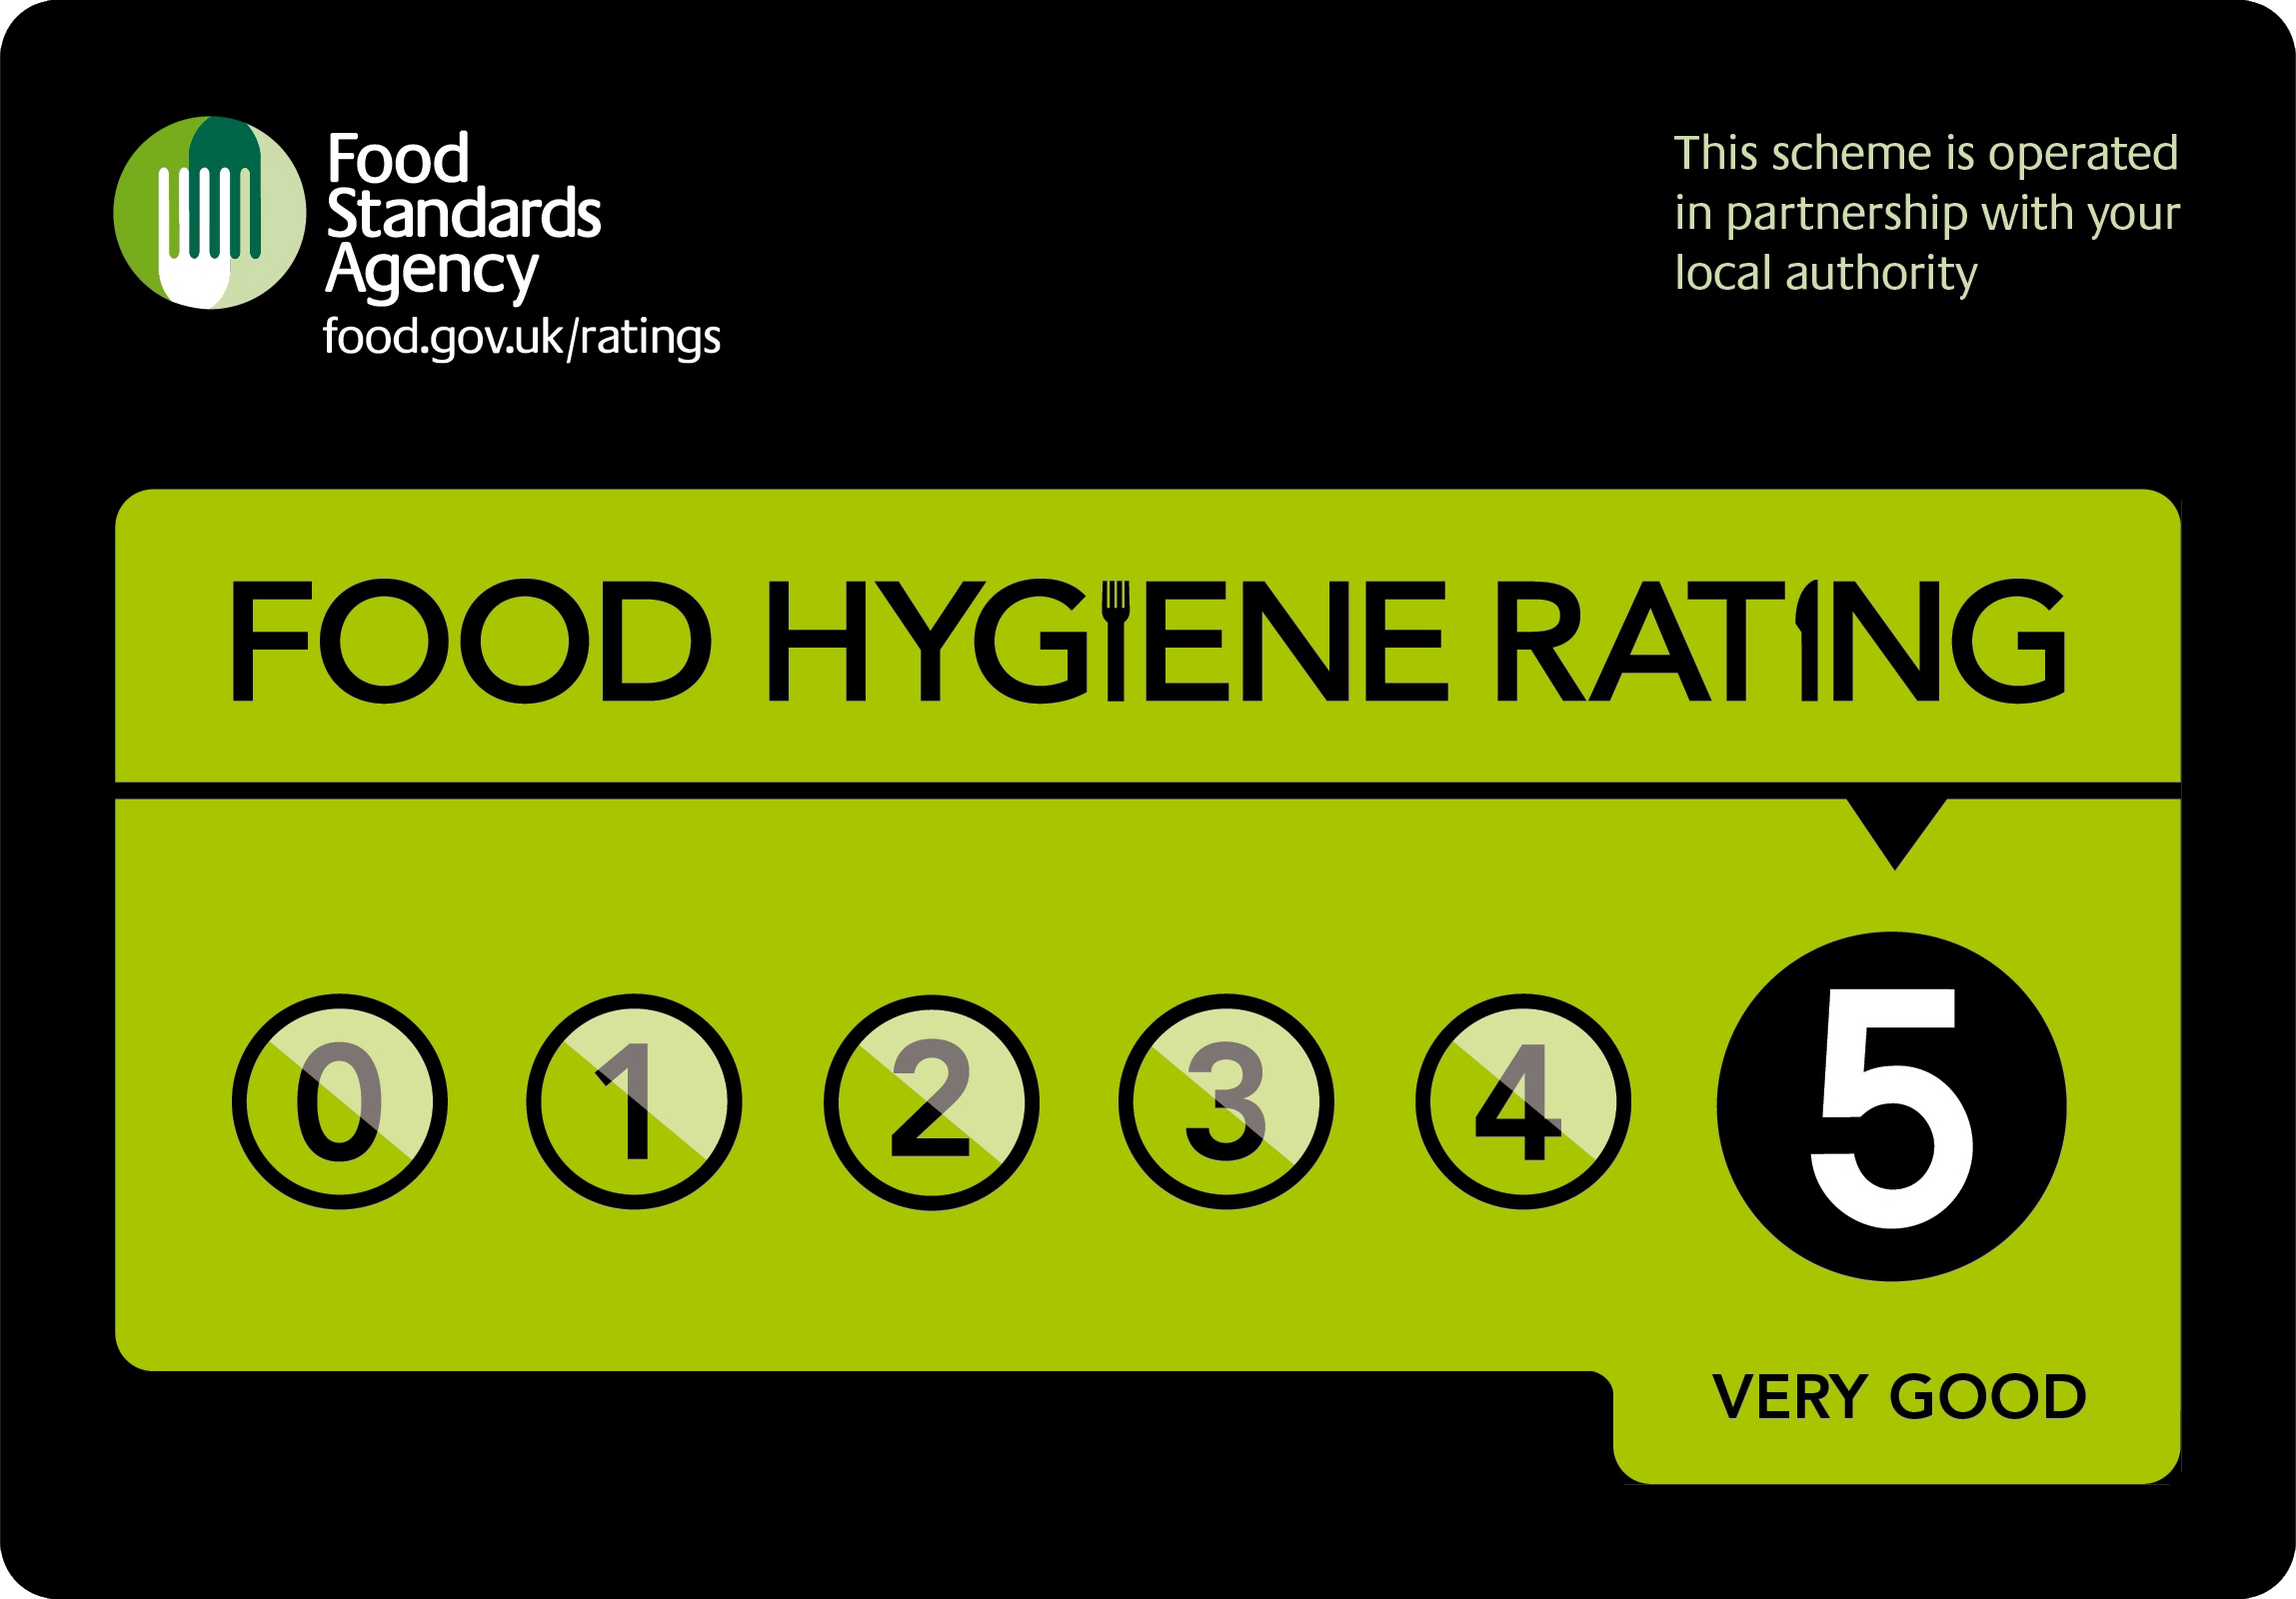 Number9 Ponteland has a 5 star food hygiene rating